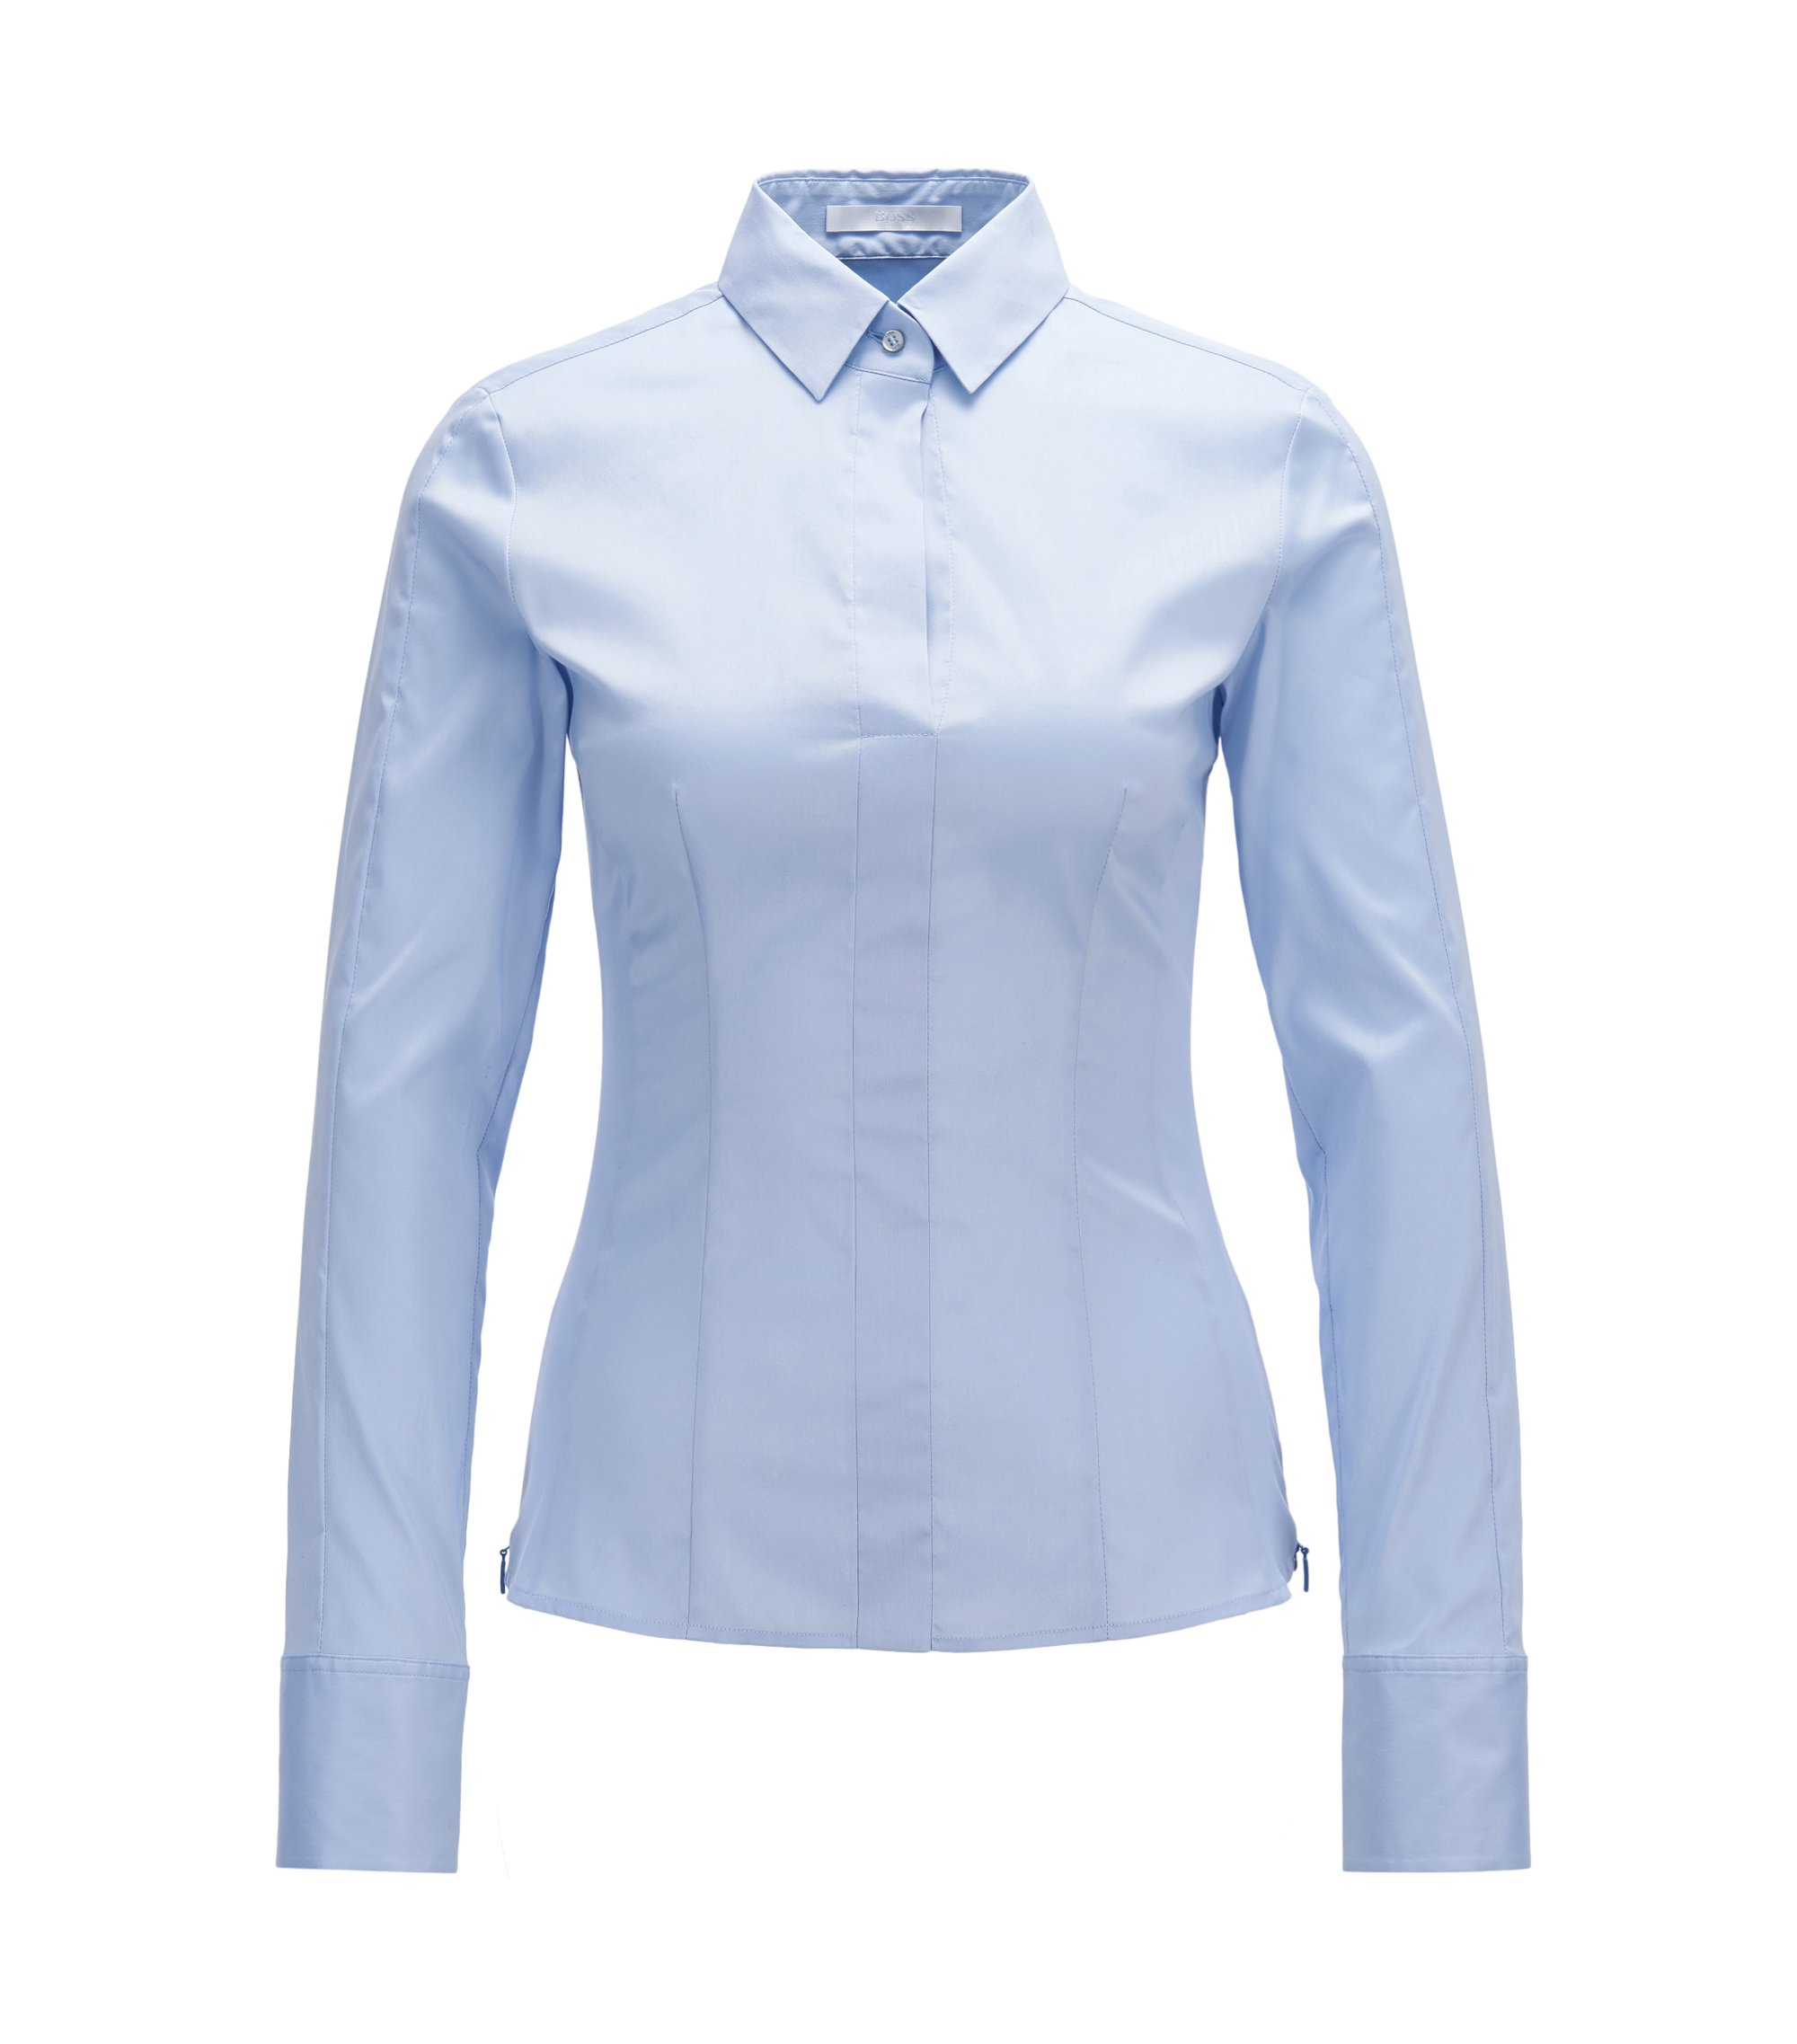 Chemisier en coton mélangé Regular Fit à patte de boutonnage invisible, Bleu vif